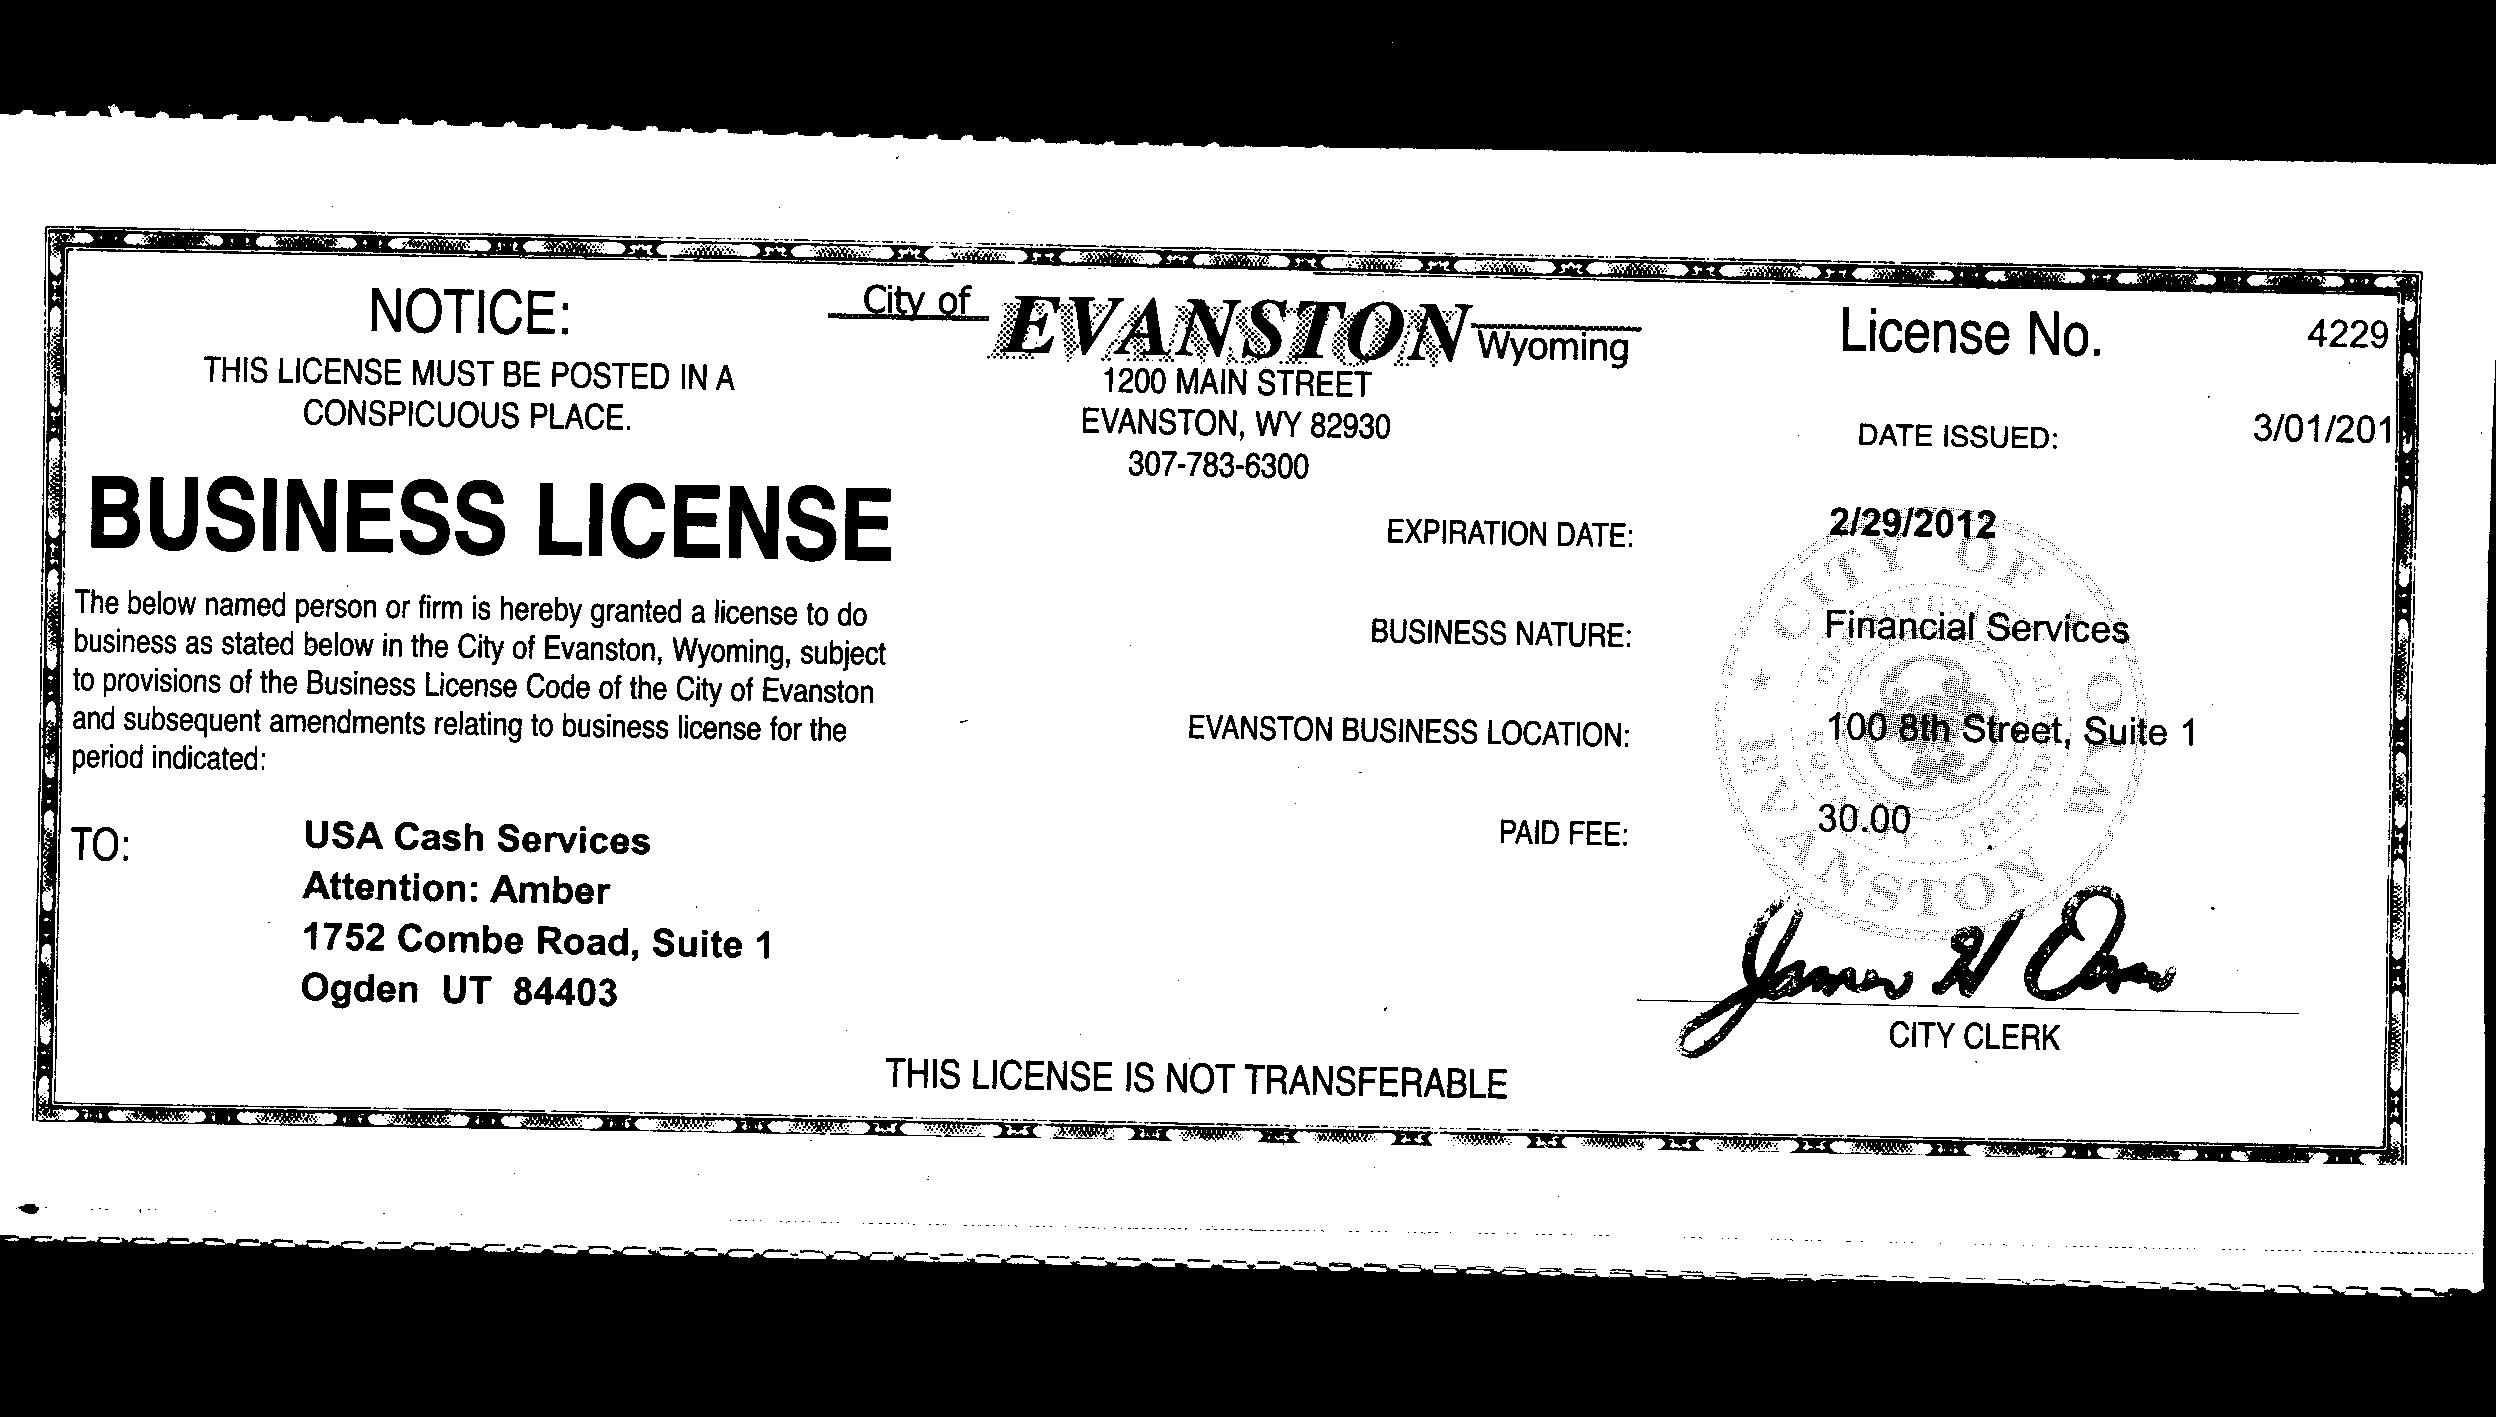 State of wyoming business license best business 2018 for Oklahoma fishing license cost